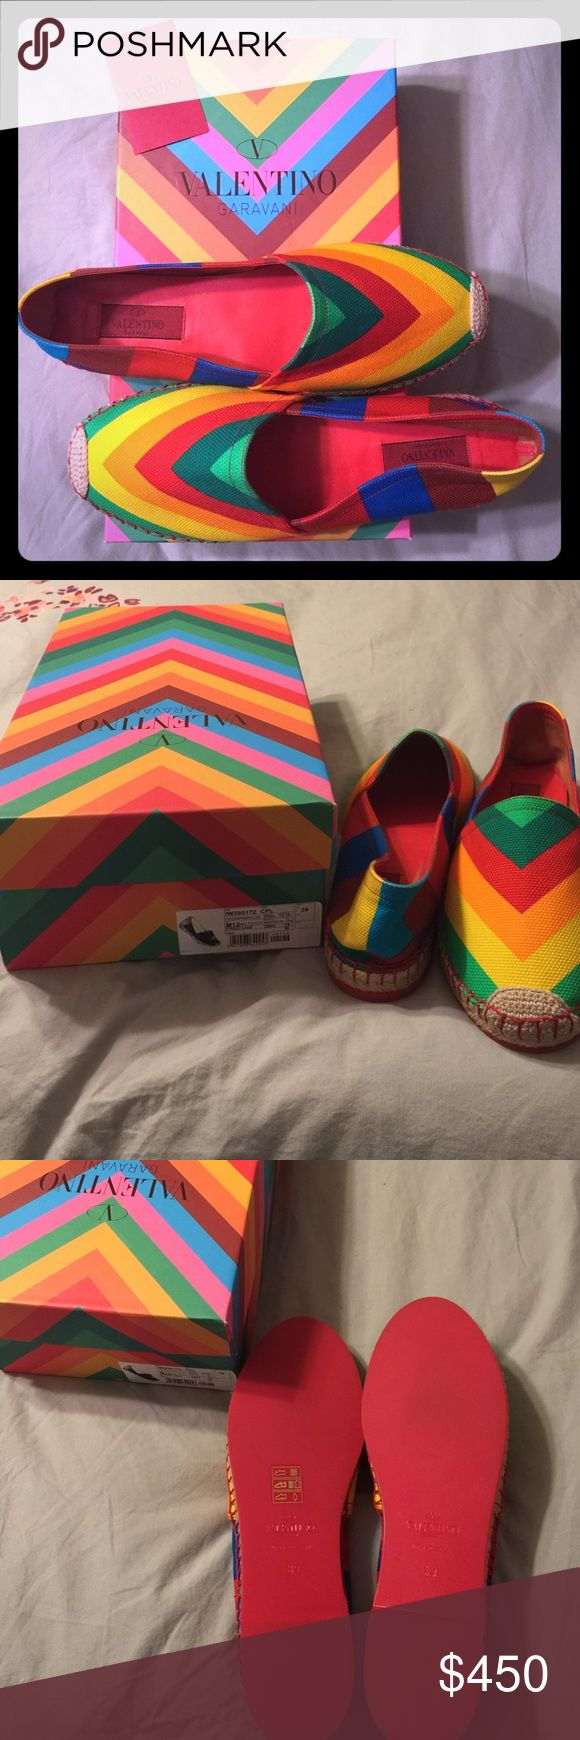 Authentic Valentino Garavani Rainbow Espadrilles Authentic new in box with dust bag Valentino Garavani Rainbow Espadrilles in size 39. If interested, make me an offer below👇No email requests please. Comment below with any questions. Valentino Garavani Shoes Espadrilles